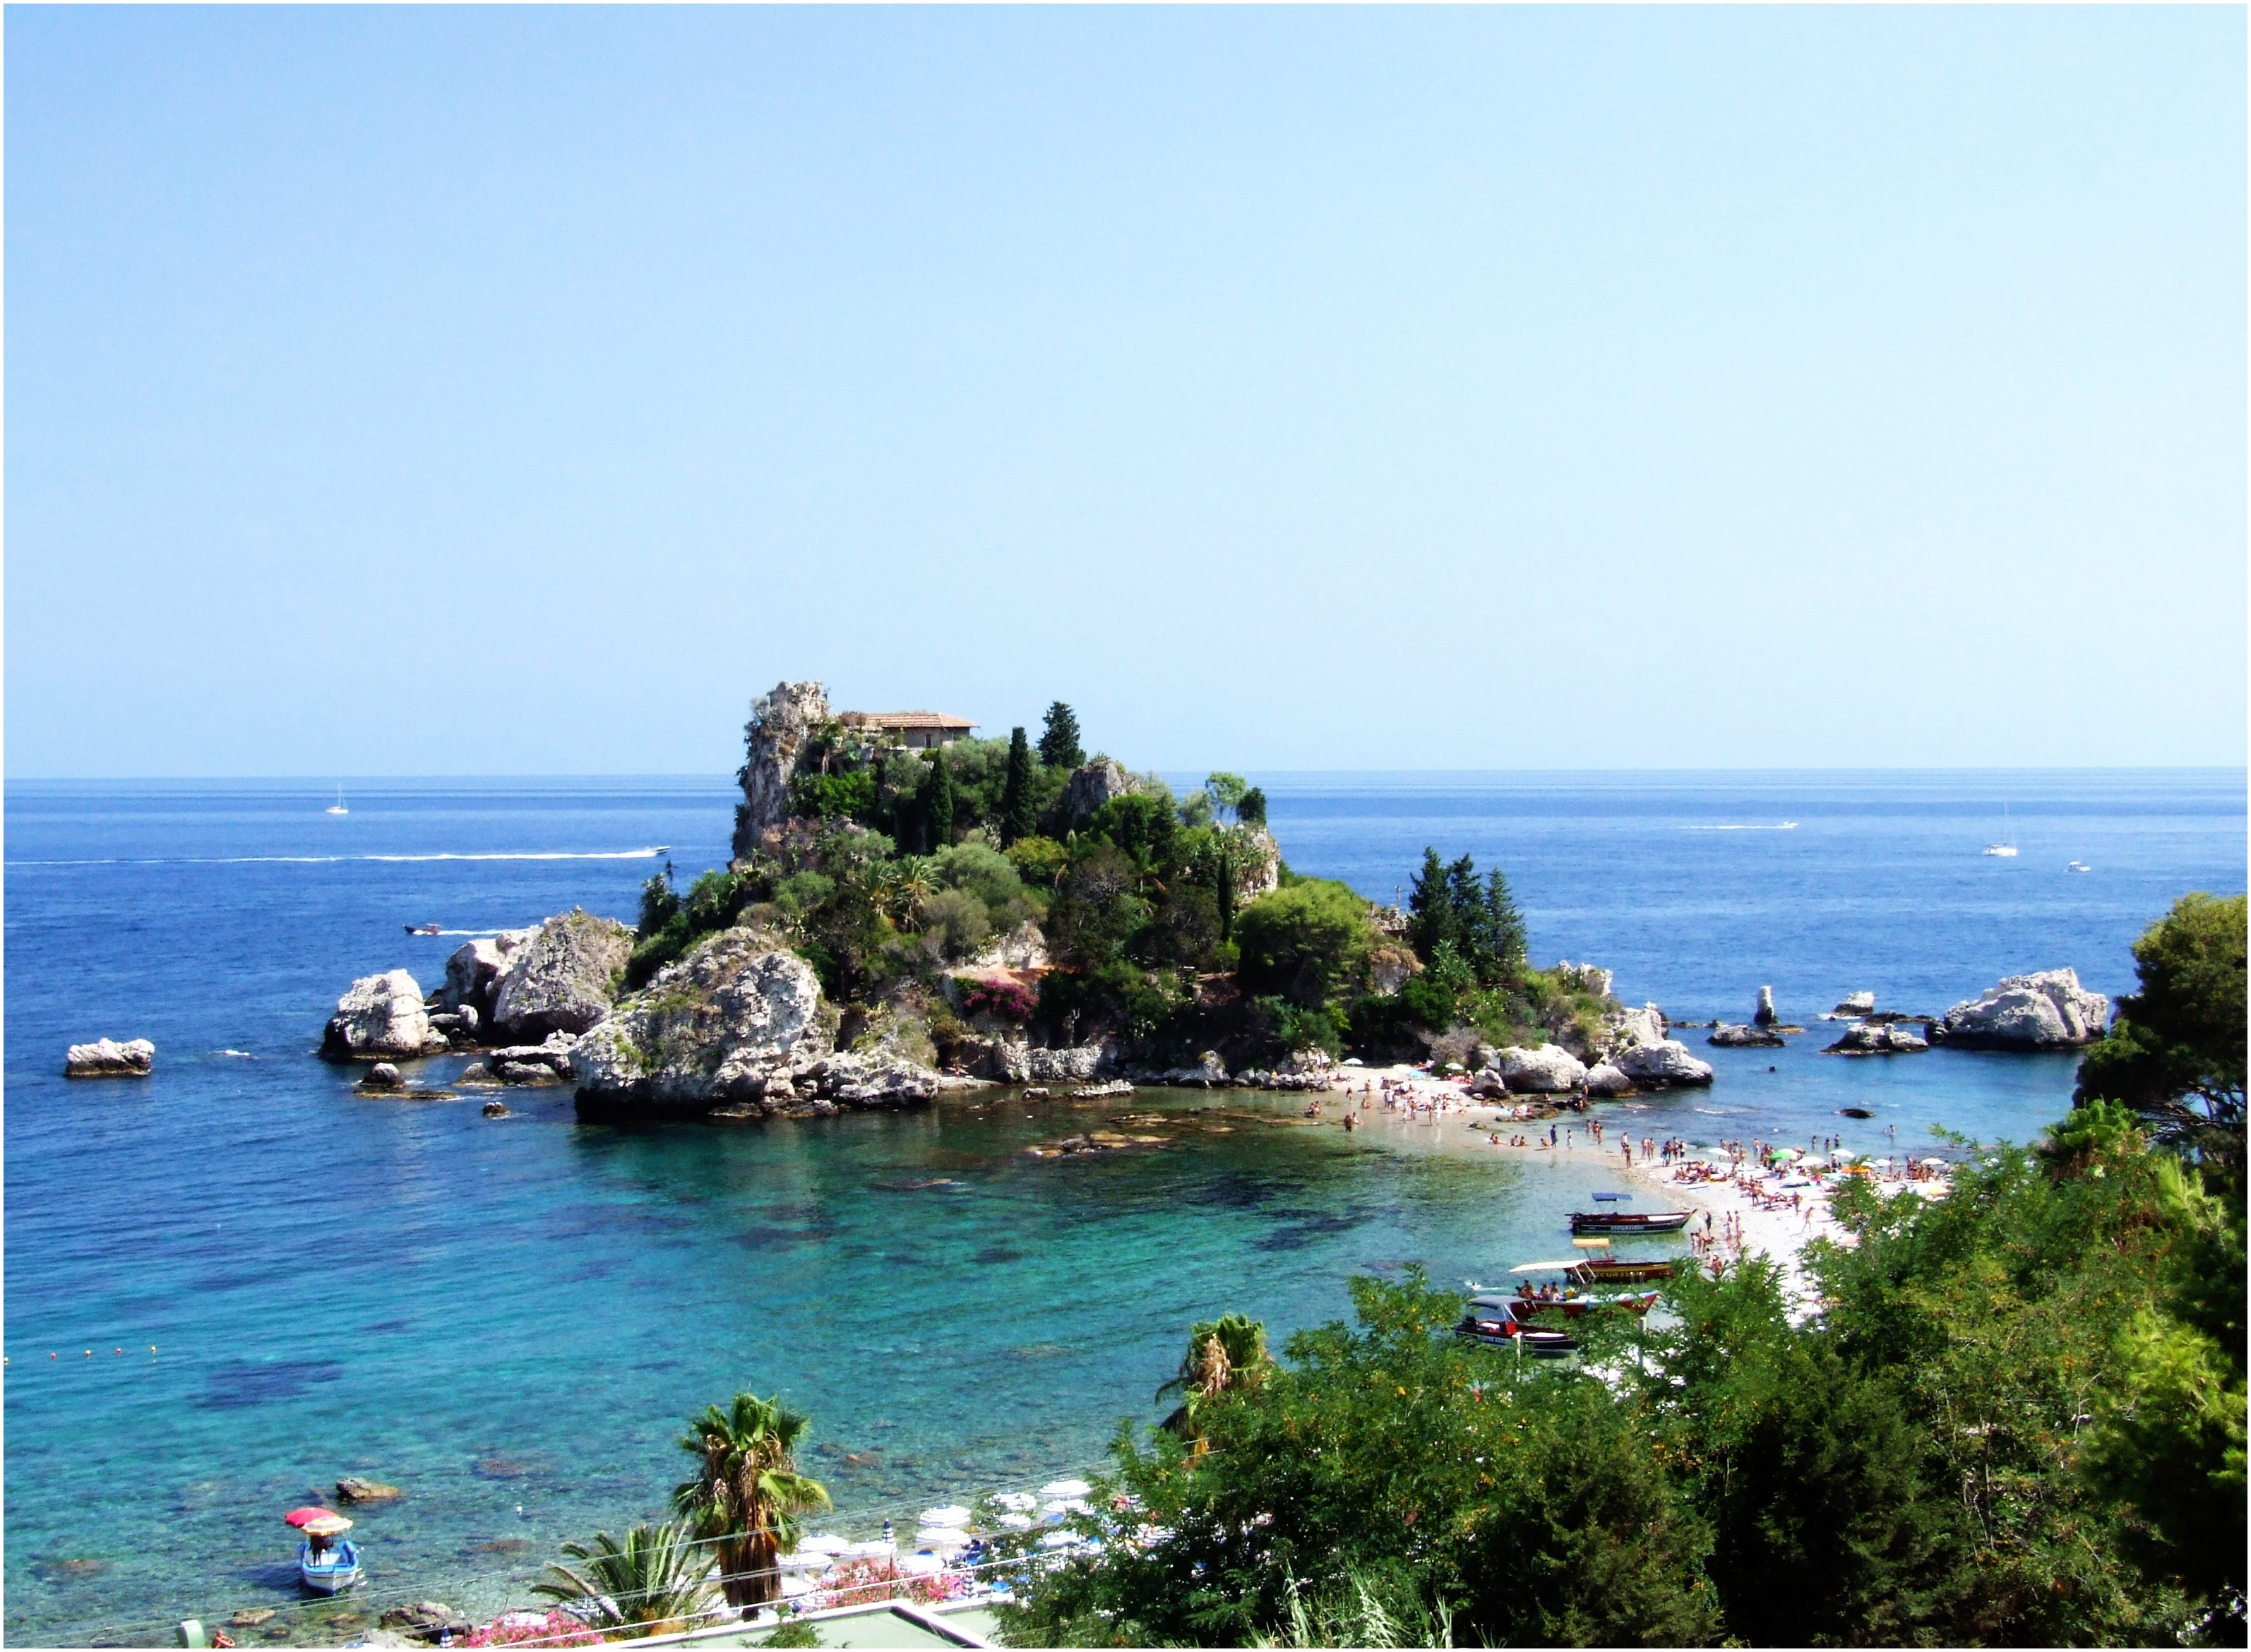 File Isola Bella Taormina Messina Sicilia Italy Creative mons by gnuckx